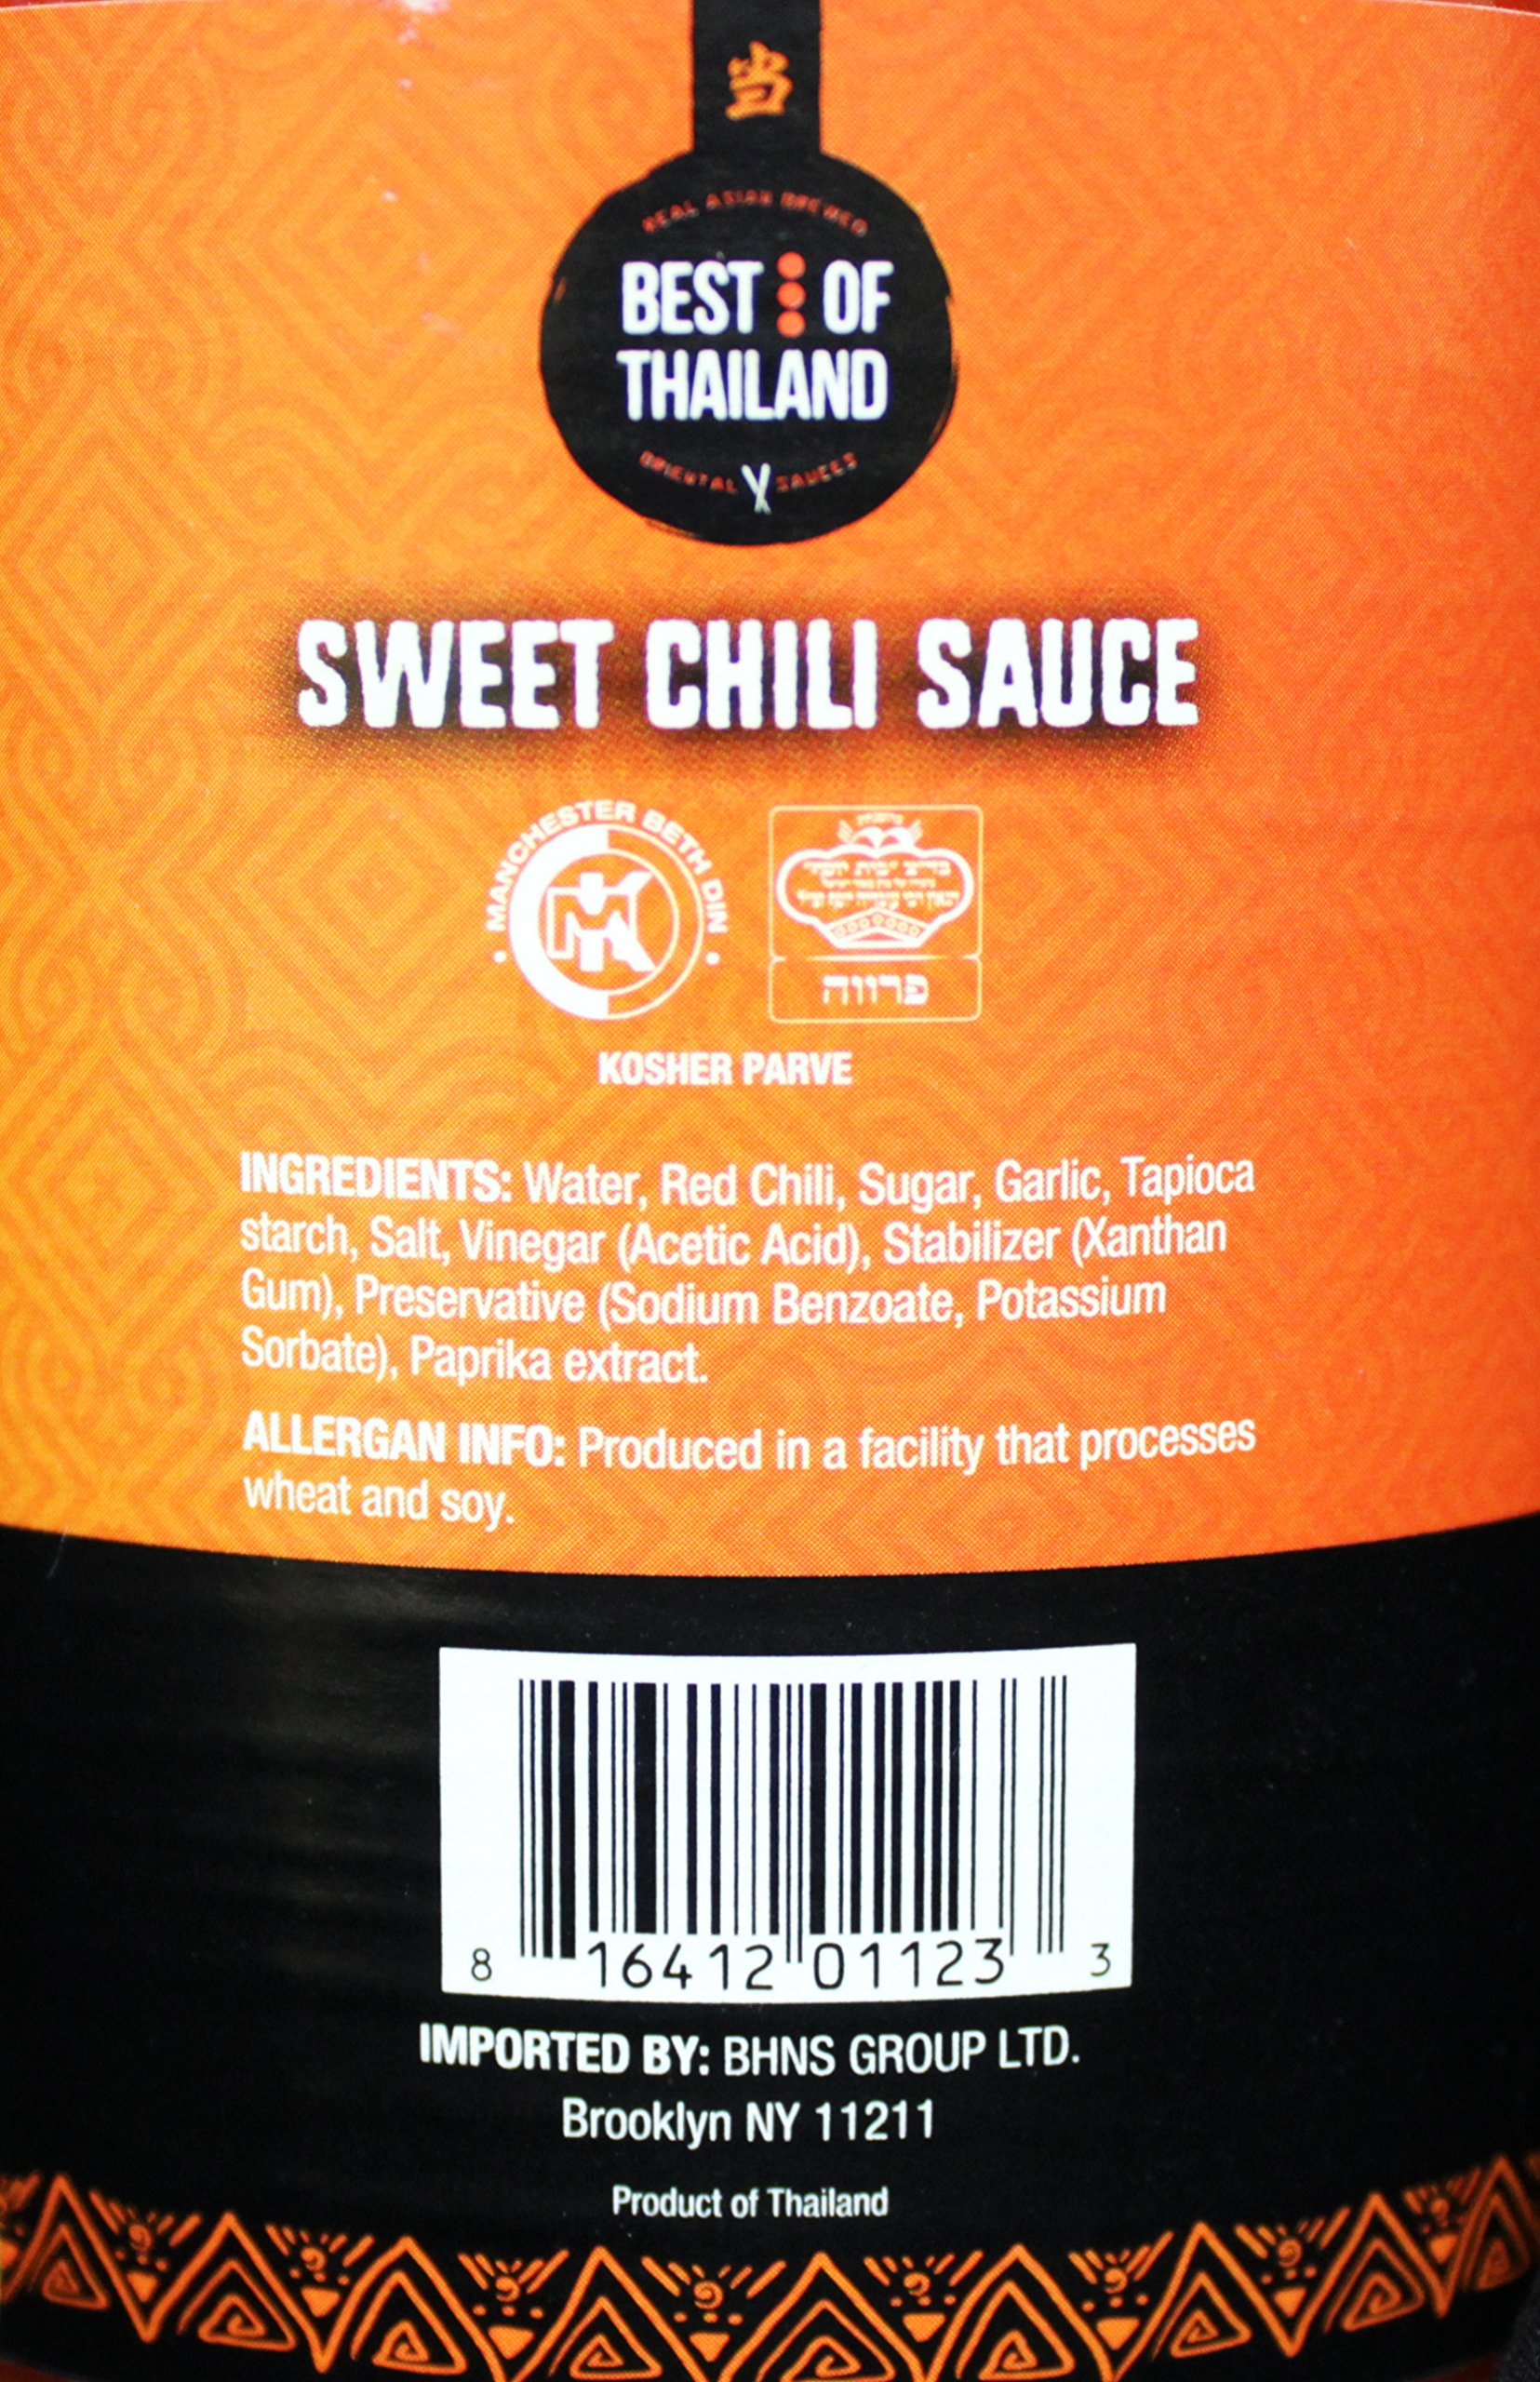 Sweet Chili Sauce (2 Pack) Real Asian Brewed – No MSG – Kosher Certified – Sweet & Spicy Dressing for Barbeque Chicken, Grilled Food, Fish, Meat – Convenient Bottle Size: 23.6 fl-oz – Best of Thailand by Best of Thailand (Image #4)